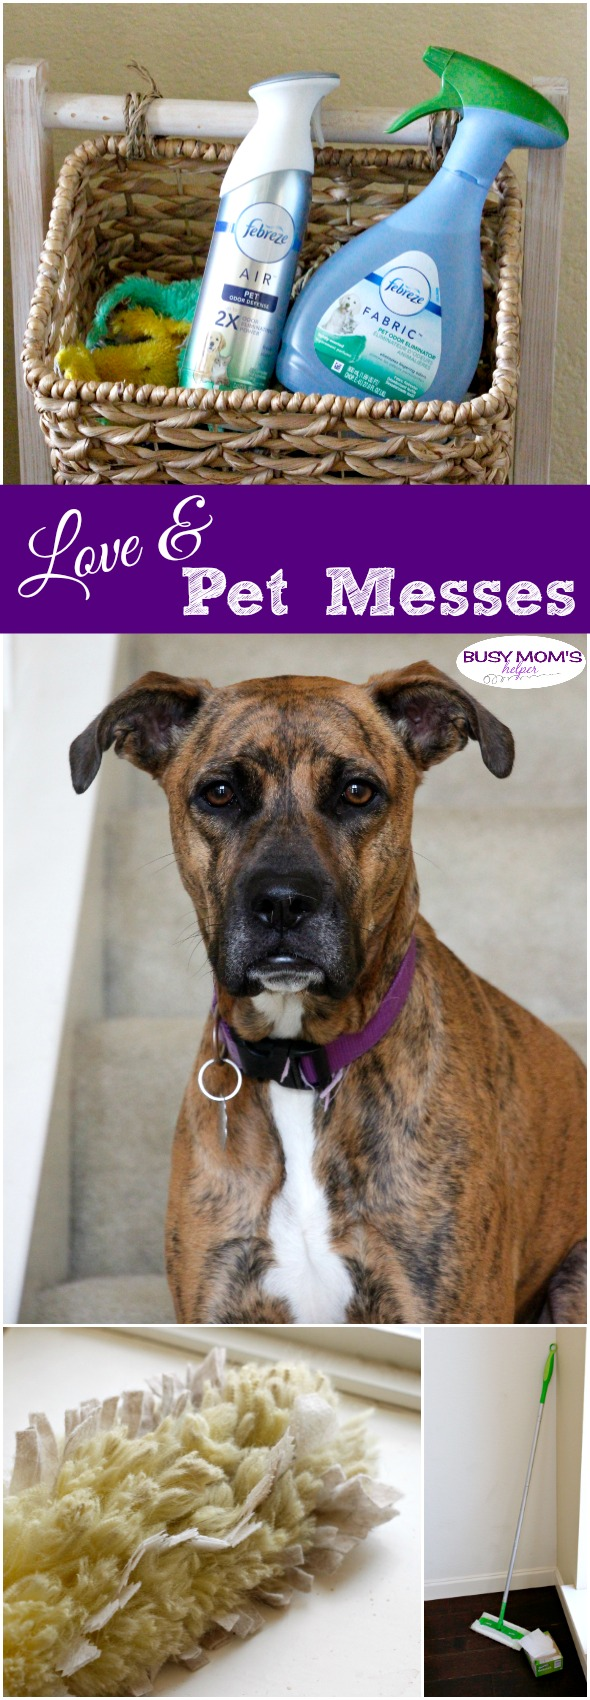 Love & Pet Messes #Sponsored #DontSweatYourPet #SwifferFanatic